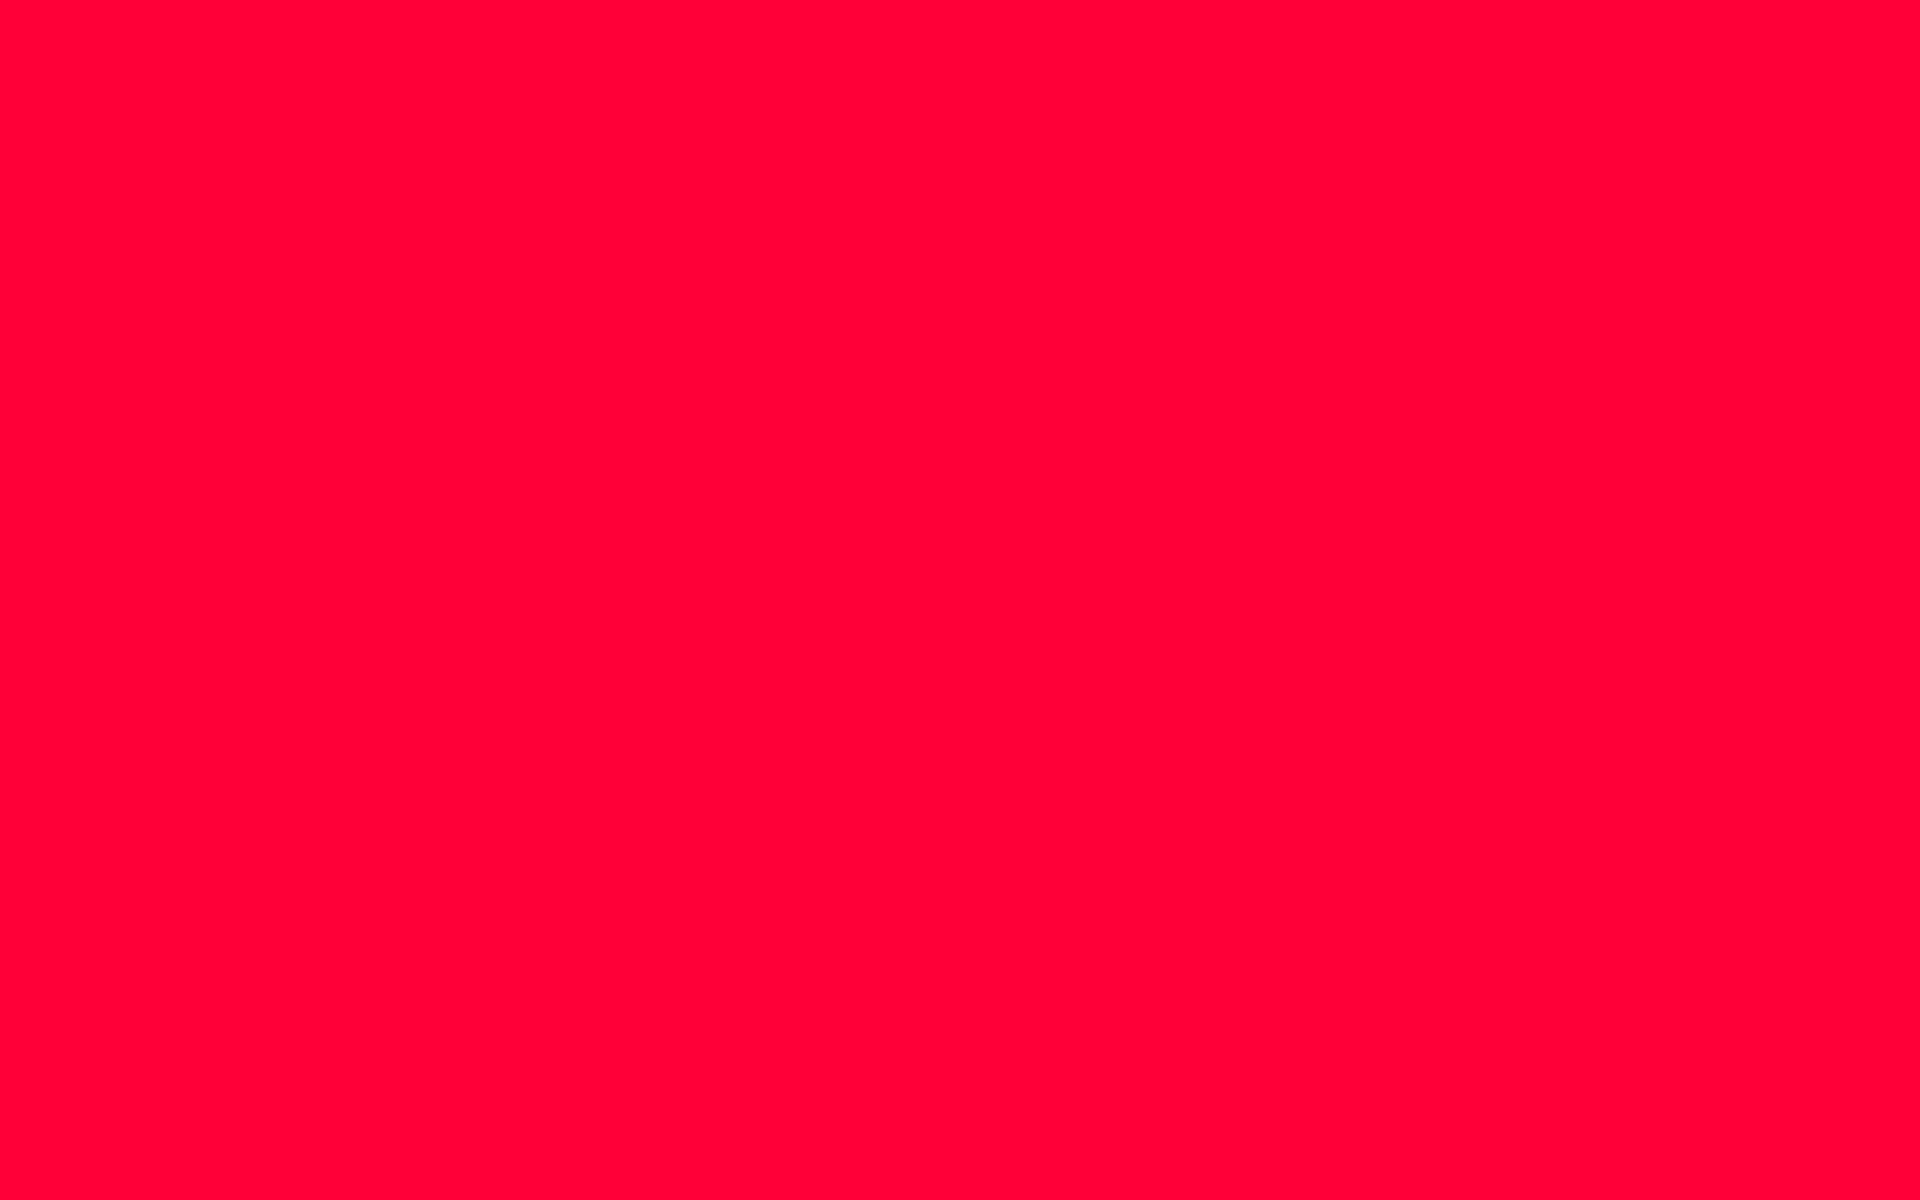 1920x1200 Carmine Red Solid Color Background